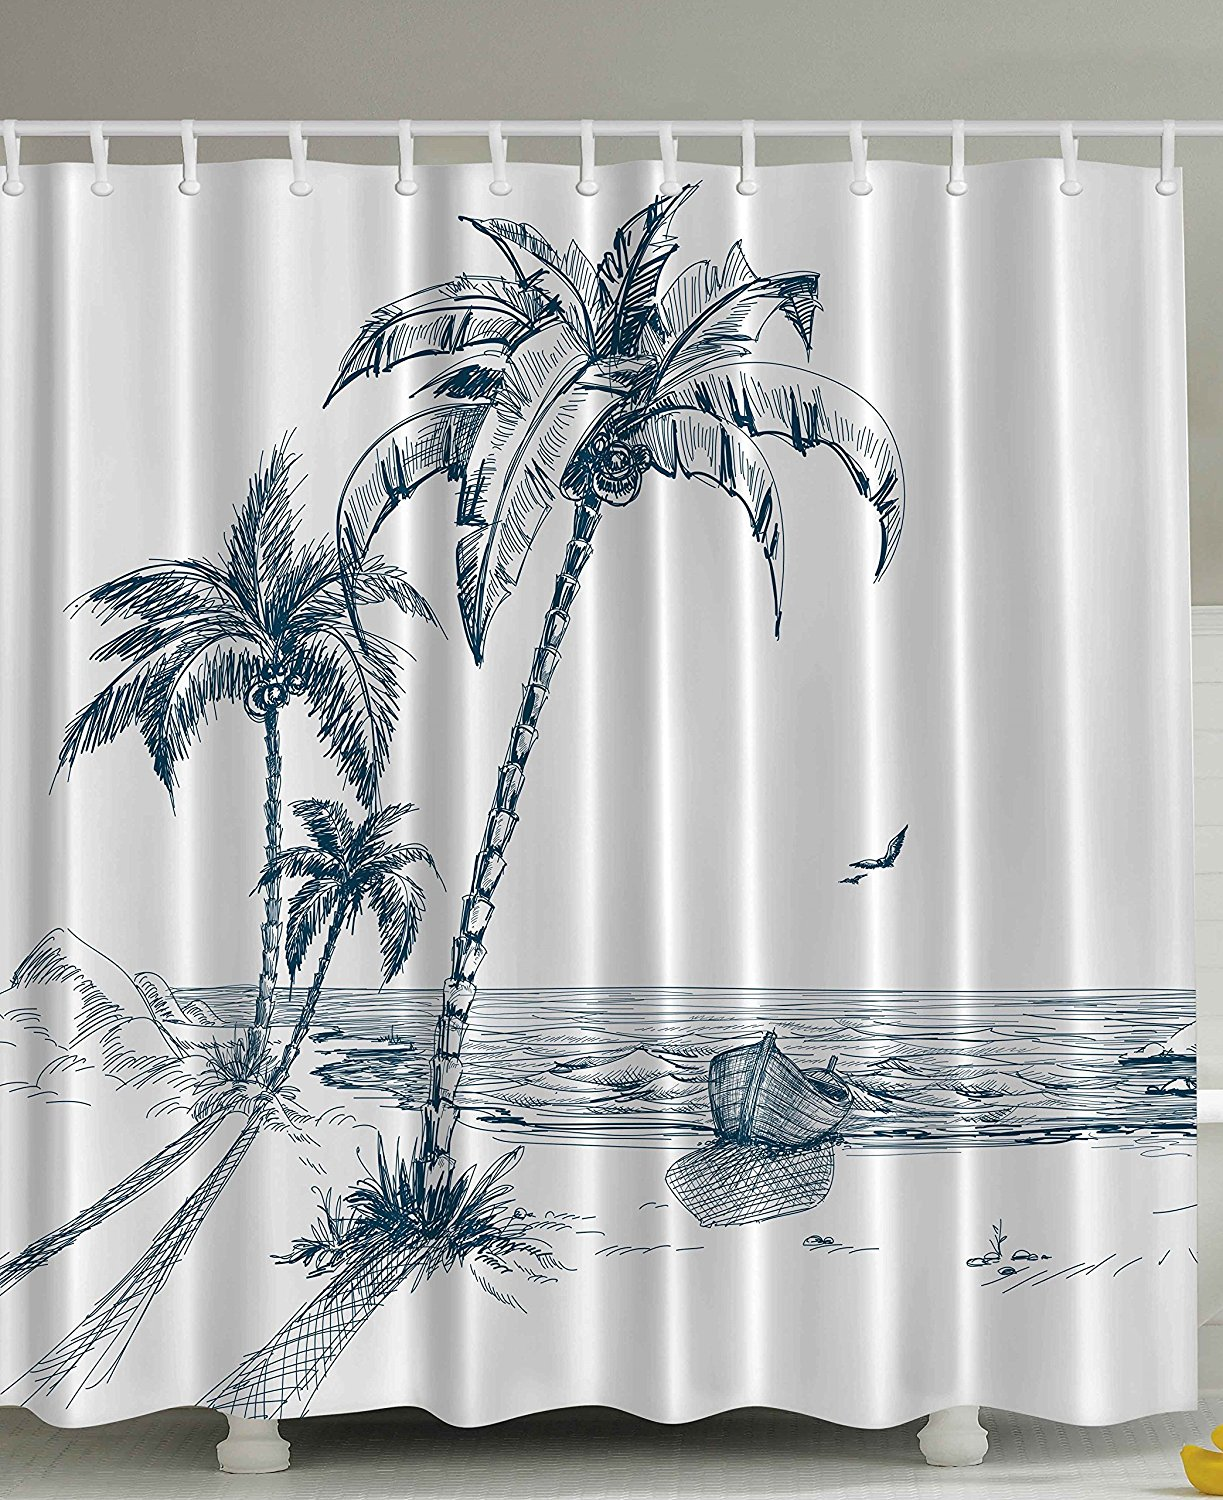 Memory Home Nautical Shower Curtain Palms Beach Tropical Decor Shadow Wooden Boat Ocean Waves